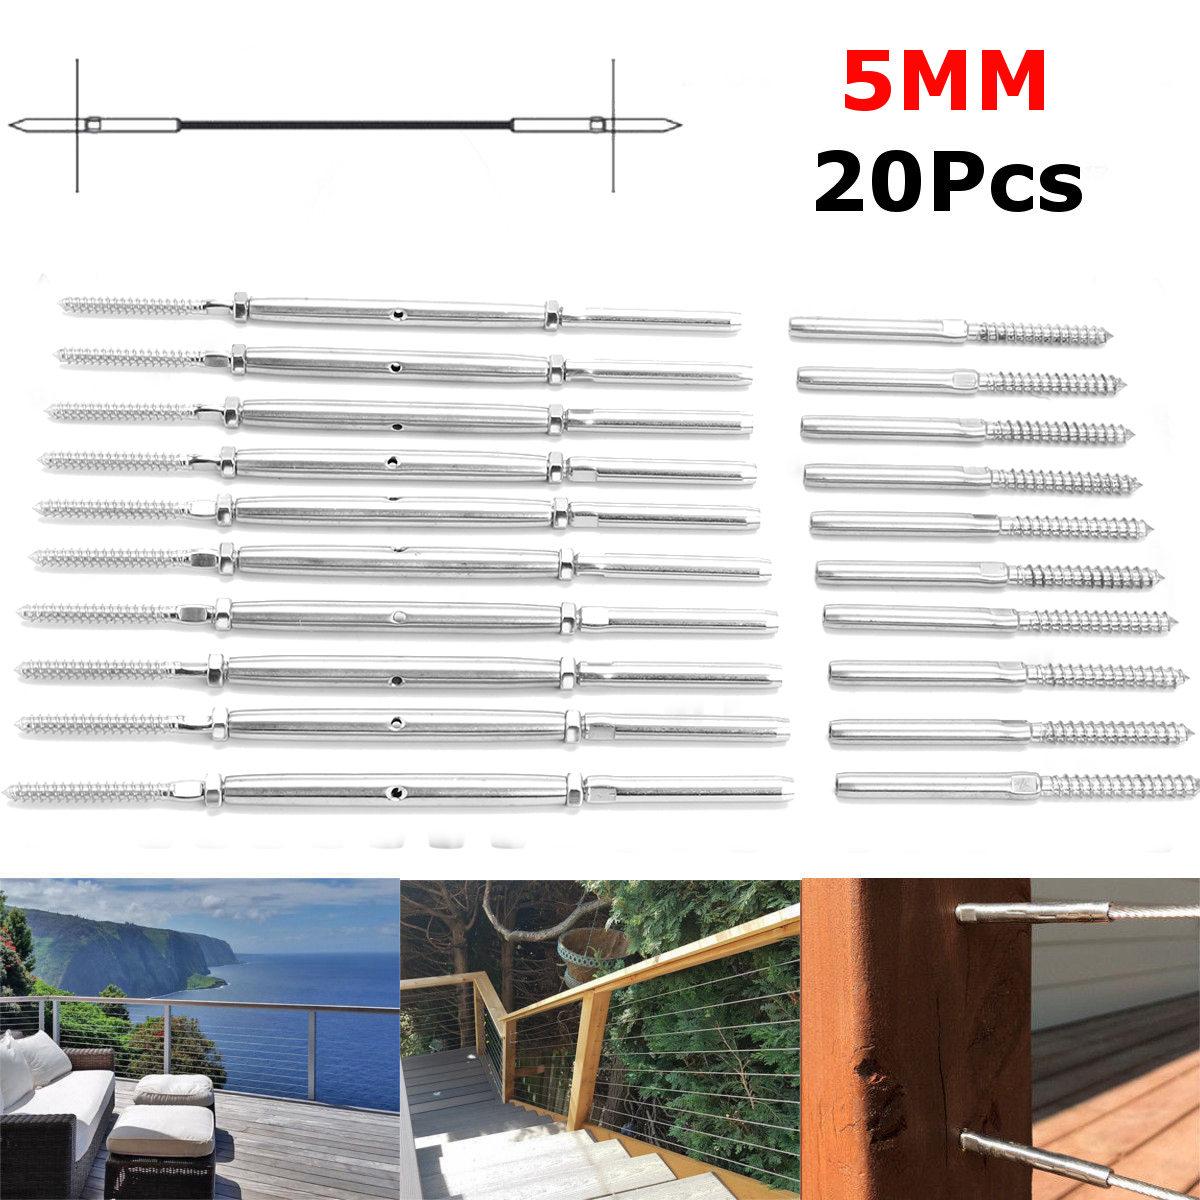 20Pcs/Set For 5mm Cable Silver Balustrade Cable Fixing Kit Screw Rope Balustrade Kit Stainless Steel Lag Screw Swage Terminal цена